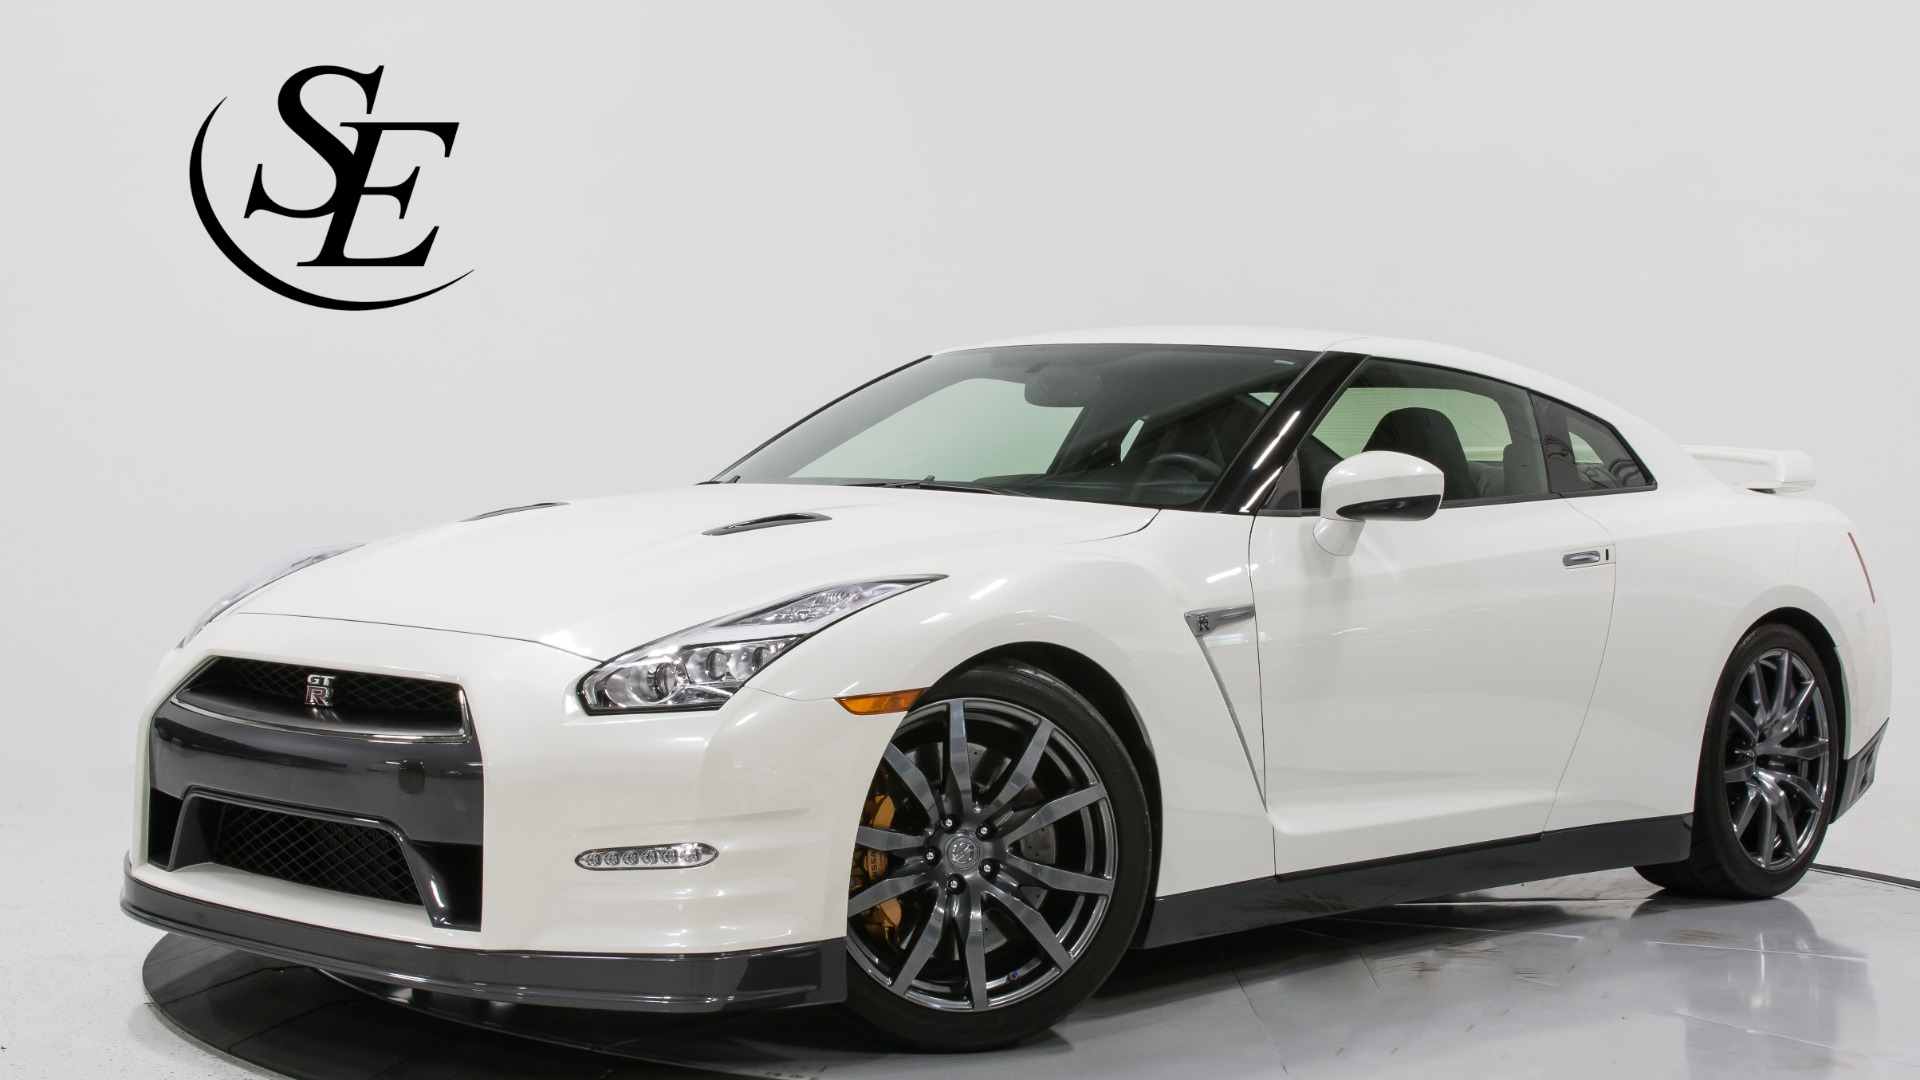 Used Nissan Gt-r for Sale Best Of 2015 Nissan Gt R Premium Stock for Sale Near Pompano Beach